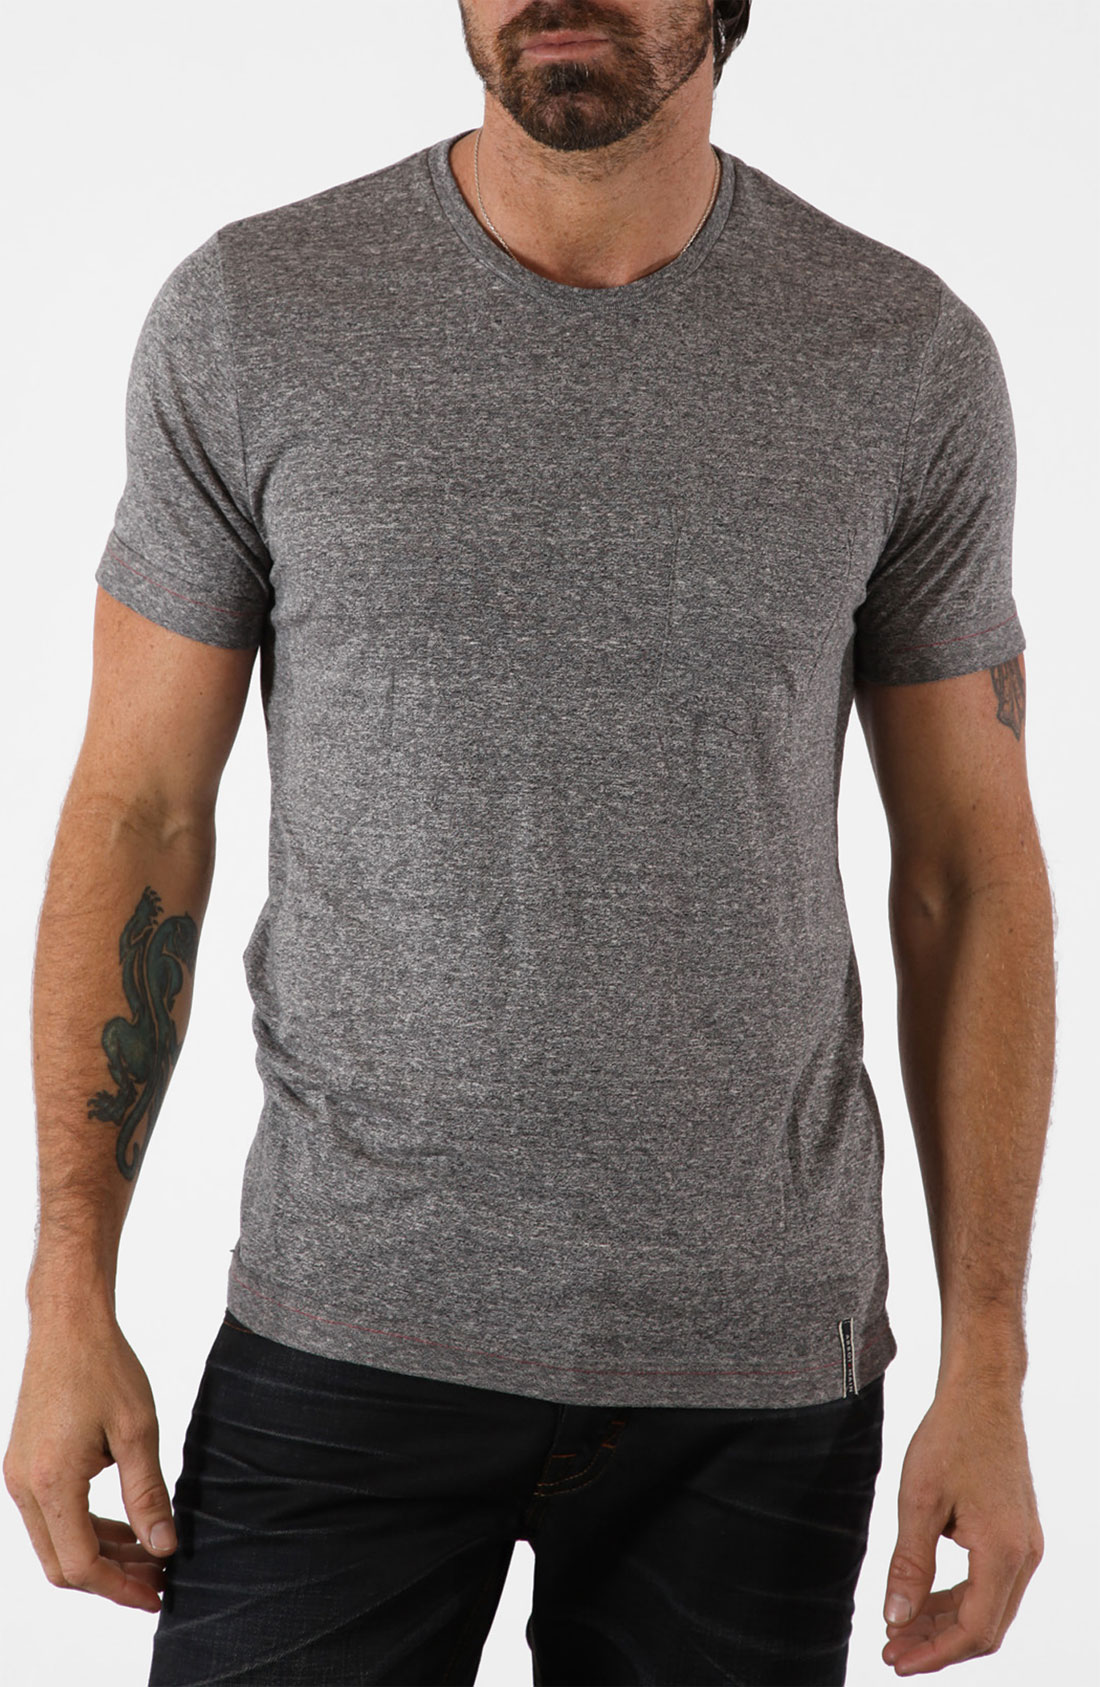 Well the Hanes Shirts: T OXF Men's Oxford Grey Cotton T-Shirt is